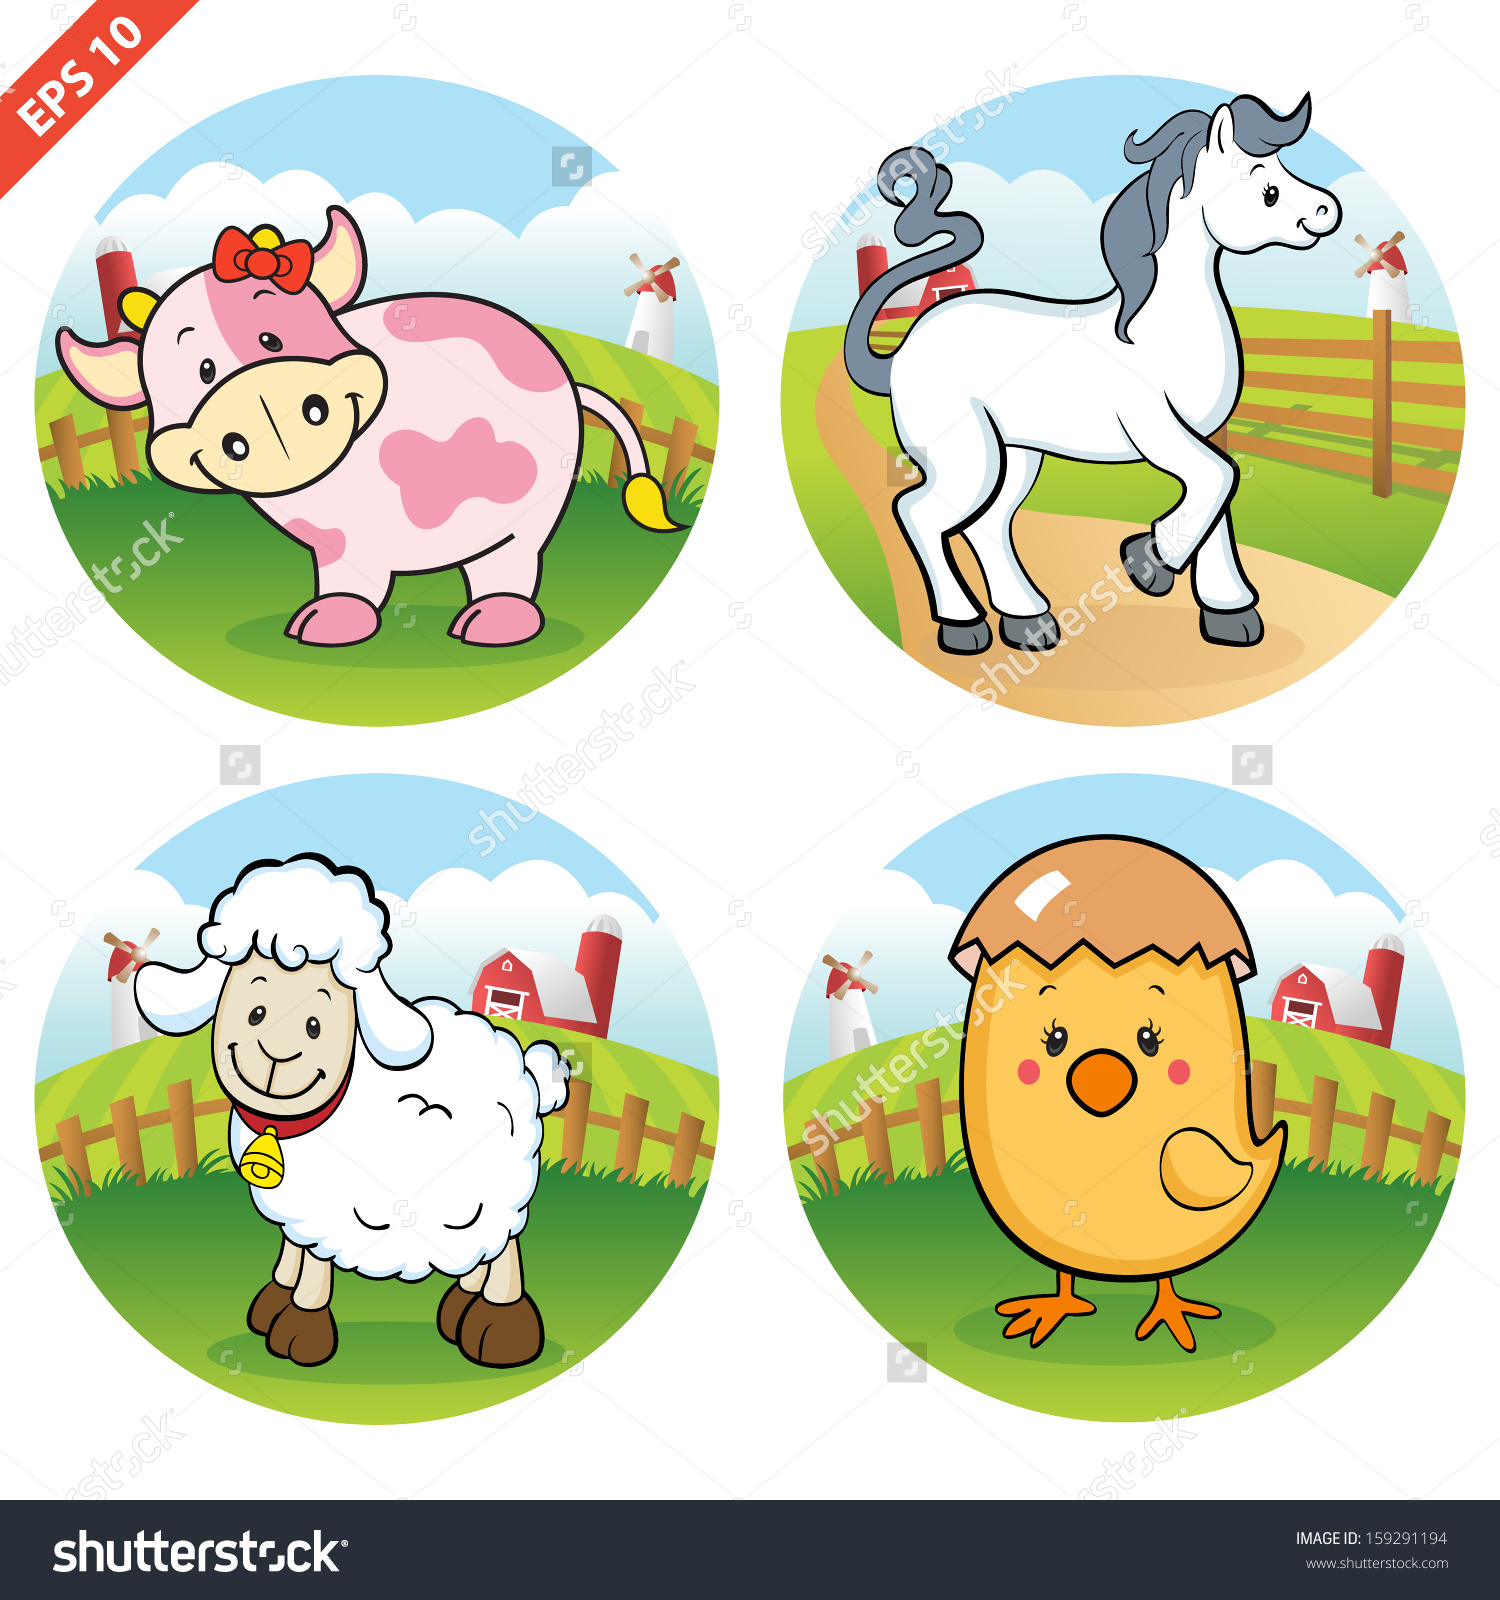 Food for animals clipart freeuse Farm clipart animals and food - ClipartFox freeuse